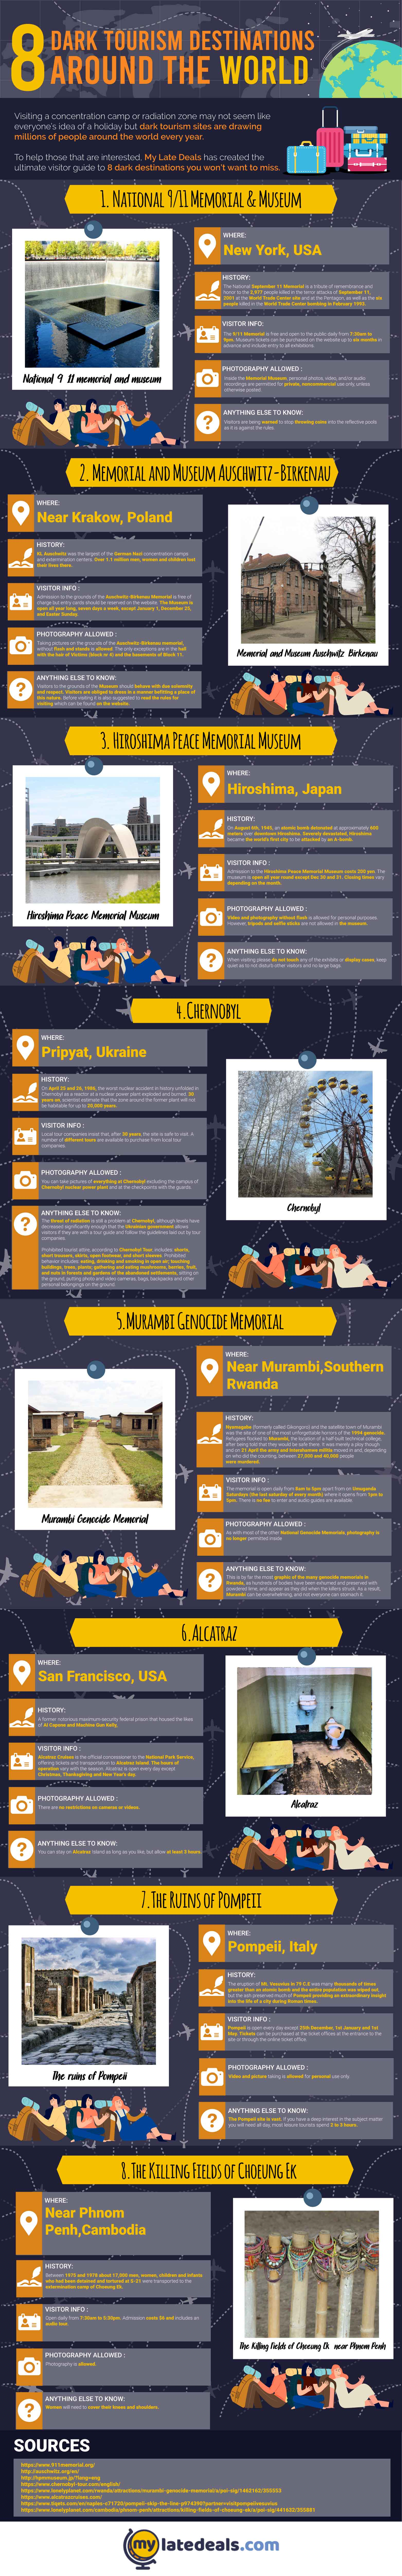 Dark tourism infographic